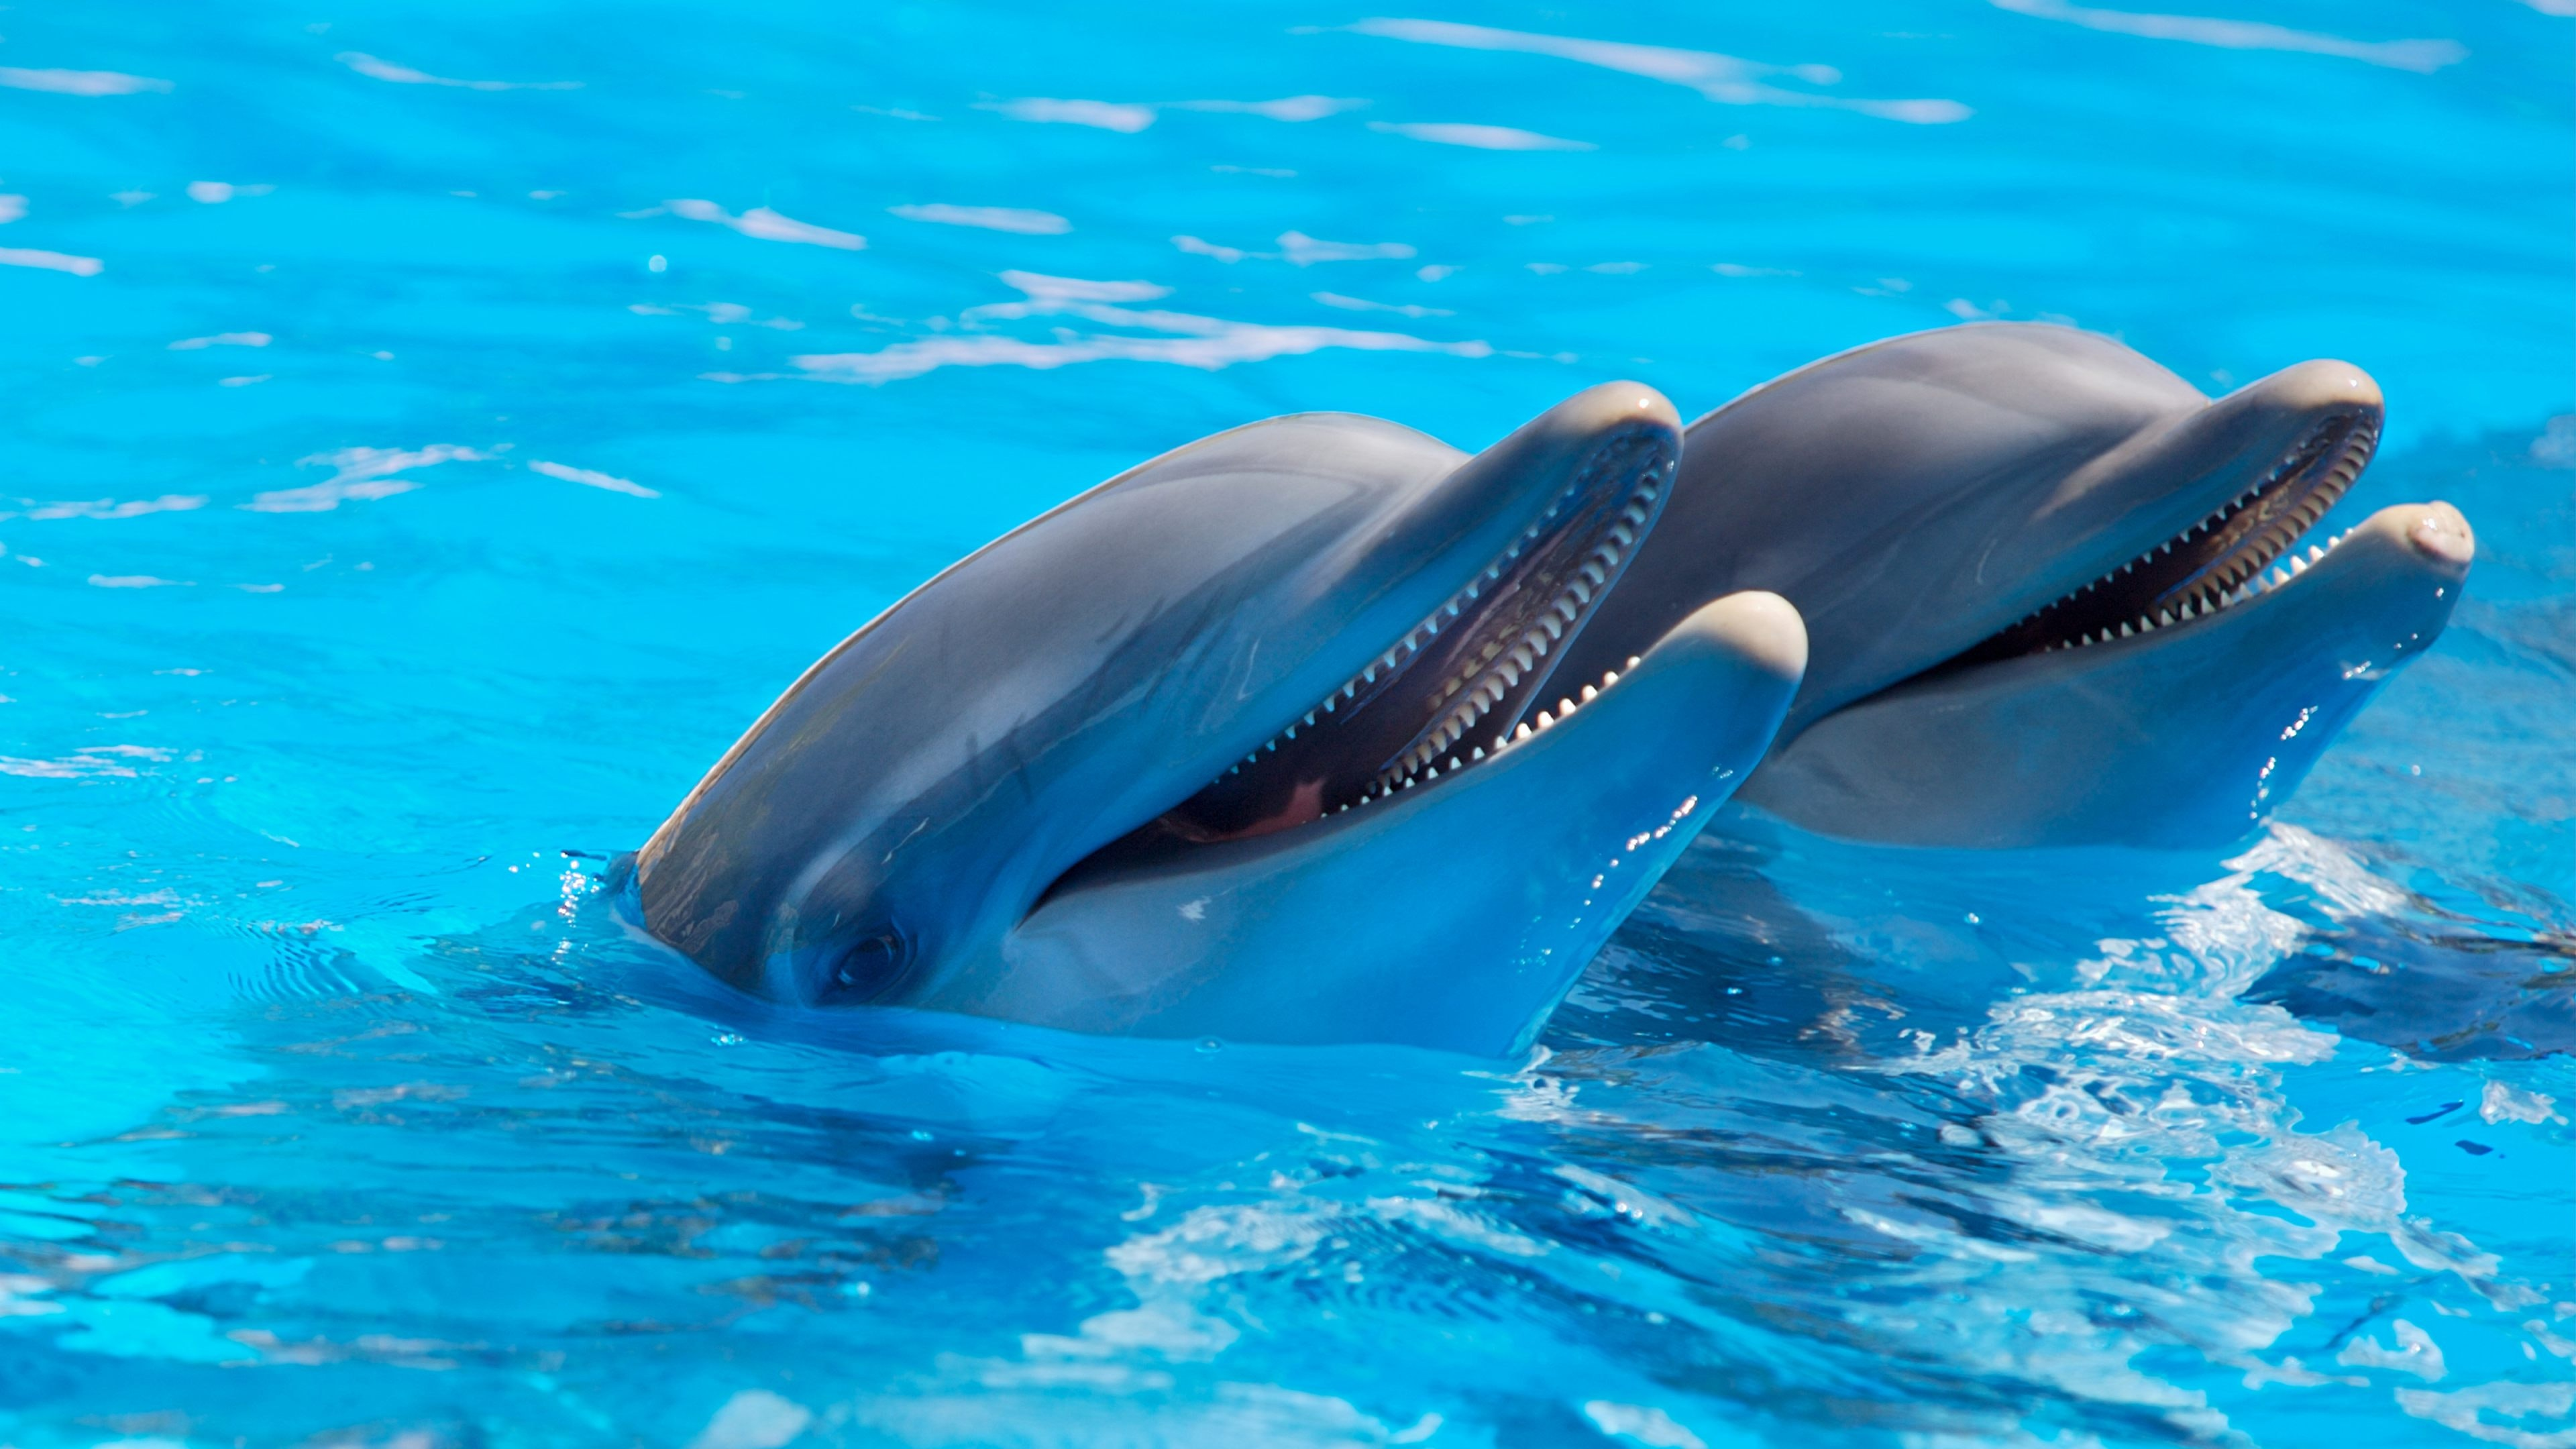 two dolphins side by side, heads out of the crystal clear blue water